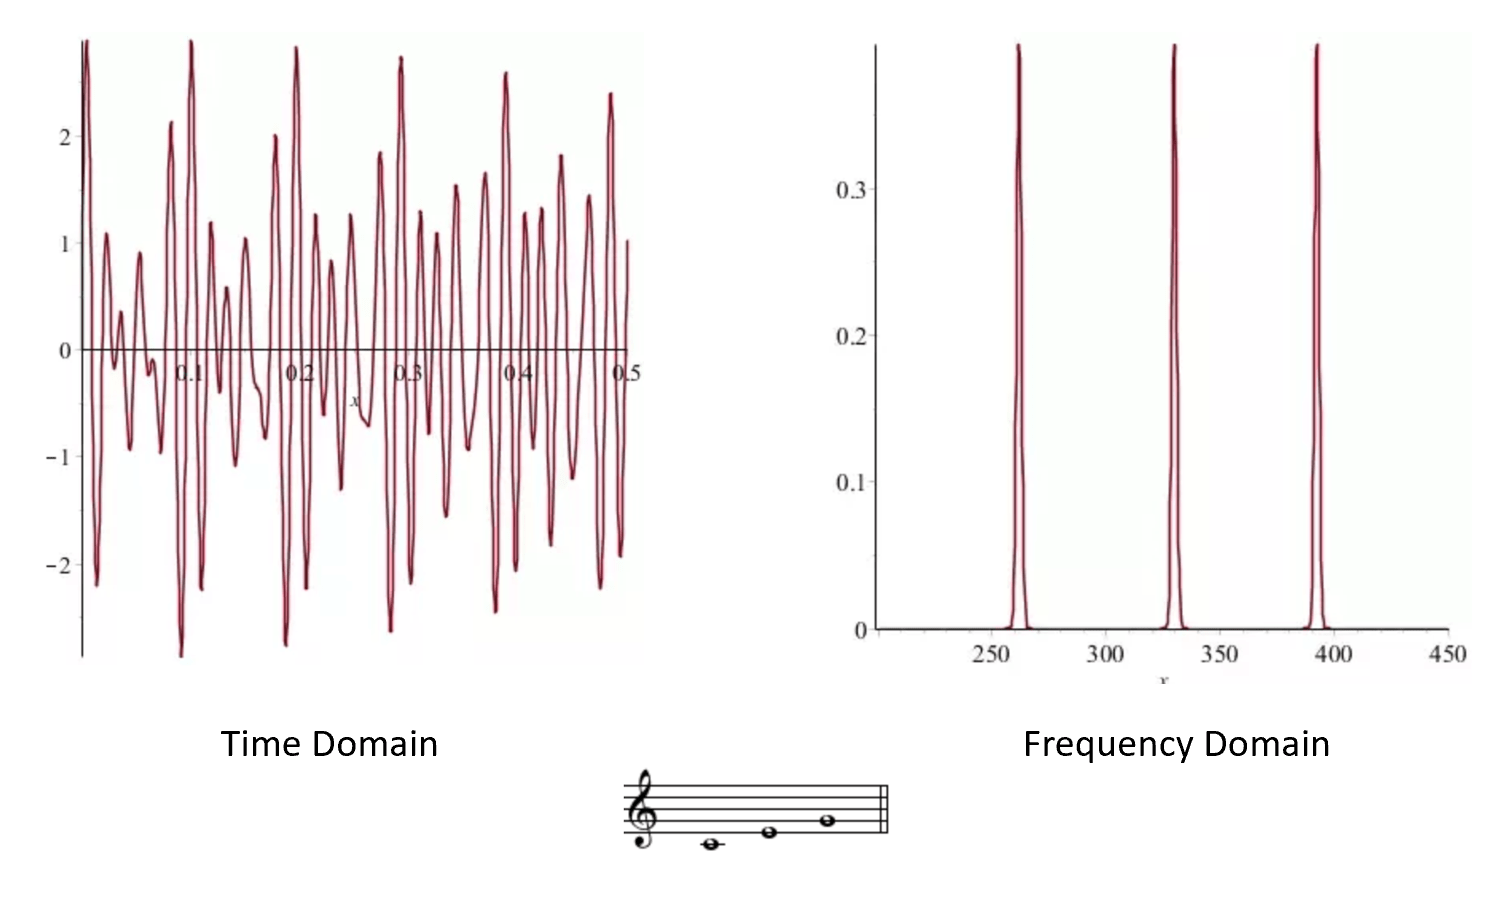 """Left: The air-pressure when playing a """"C Major"""" chord as a function of time. Right: The coefficients of the Fourier transform of the same function, we can see that it is the sum of three freuencies corresponding to the C, E and G notes (261.63, 329.63 and 392 Hertz respectively). Credit: Bjarke Mønsted's Quora answer."""